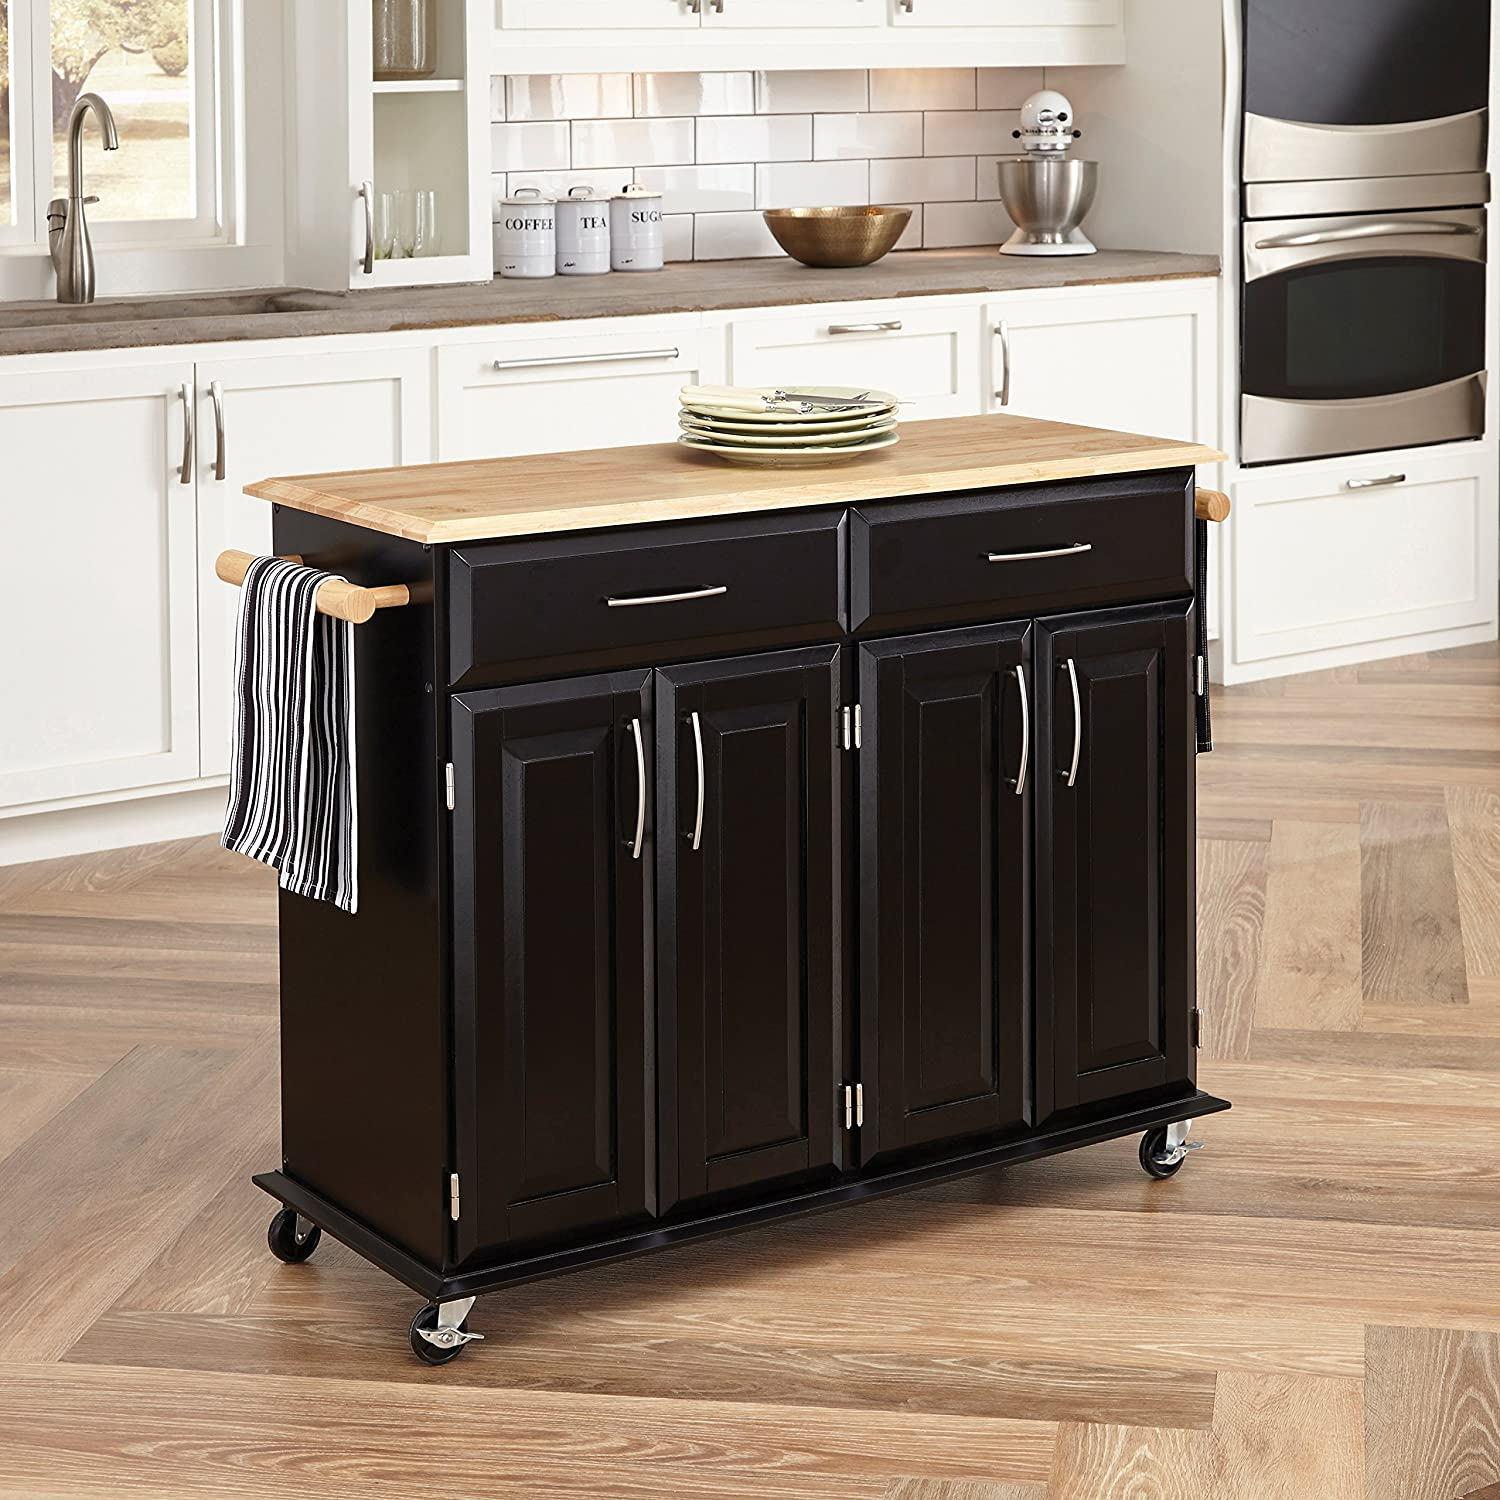 mazon.com - Home Styles 4528-95 Dolly Madison Kitchen art, Black ... - ^